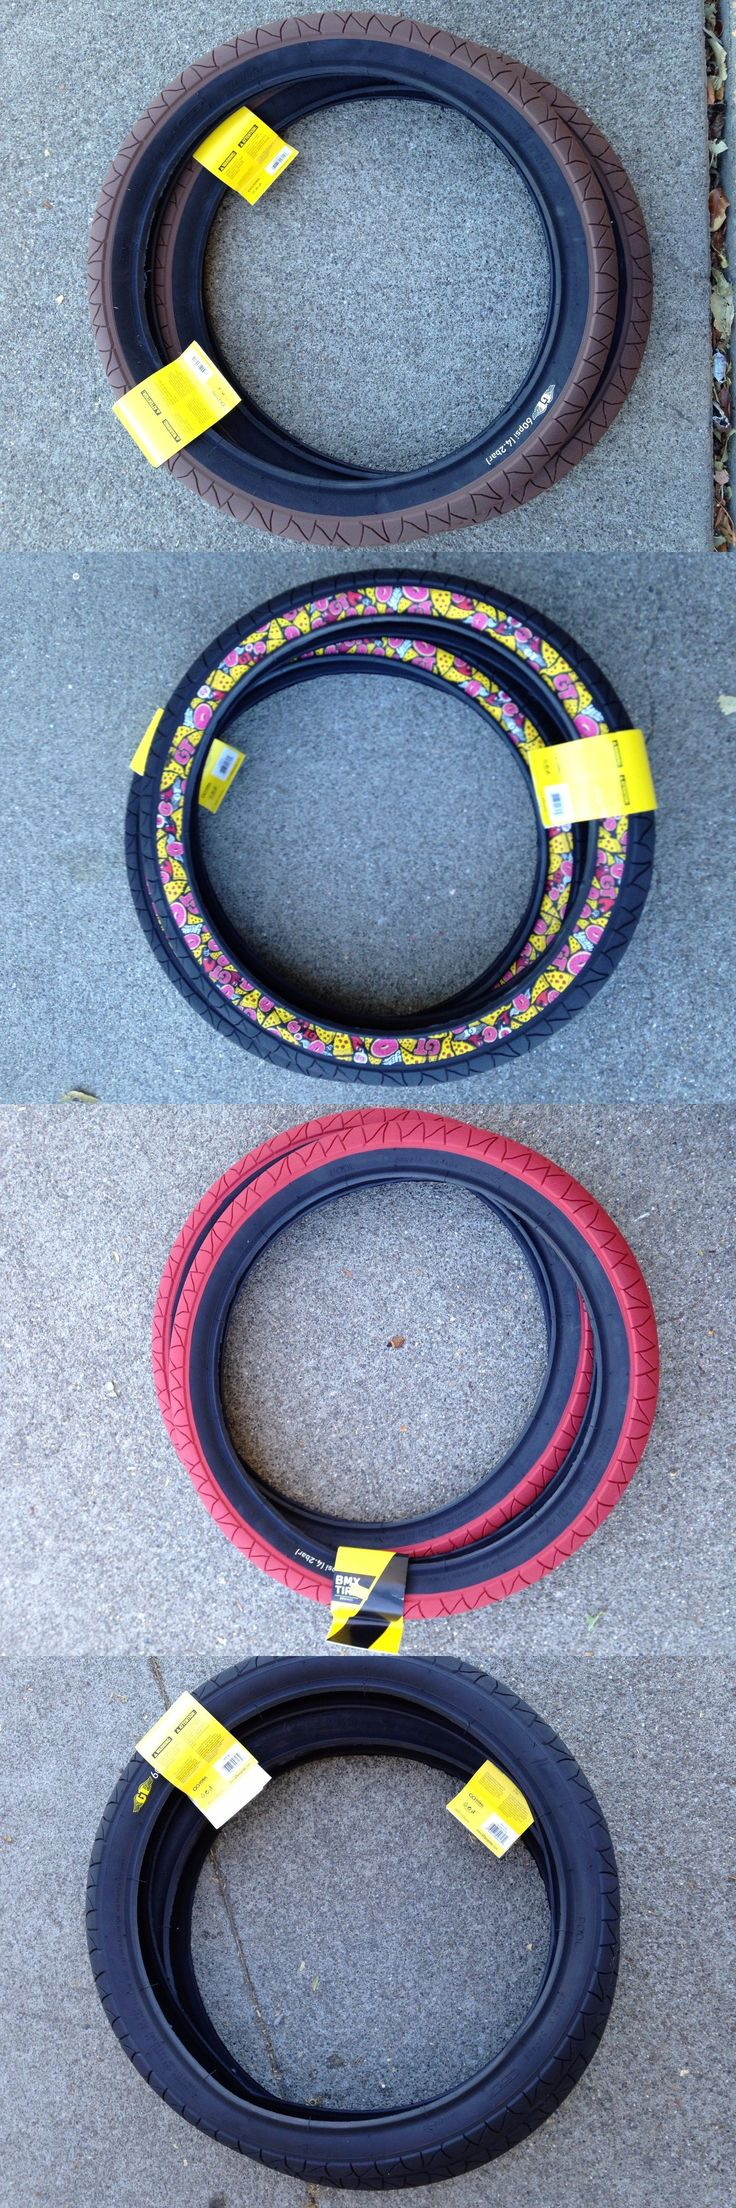 Tires 177828: Gt Bmx Tires Pool Tires 20 X 2.3 Pair 2 Tires -> BUY IT NOW ONLY: $35.99 on eBay!